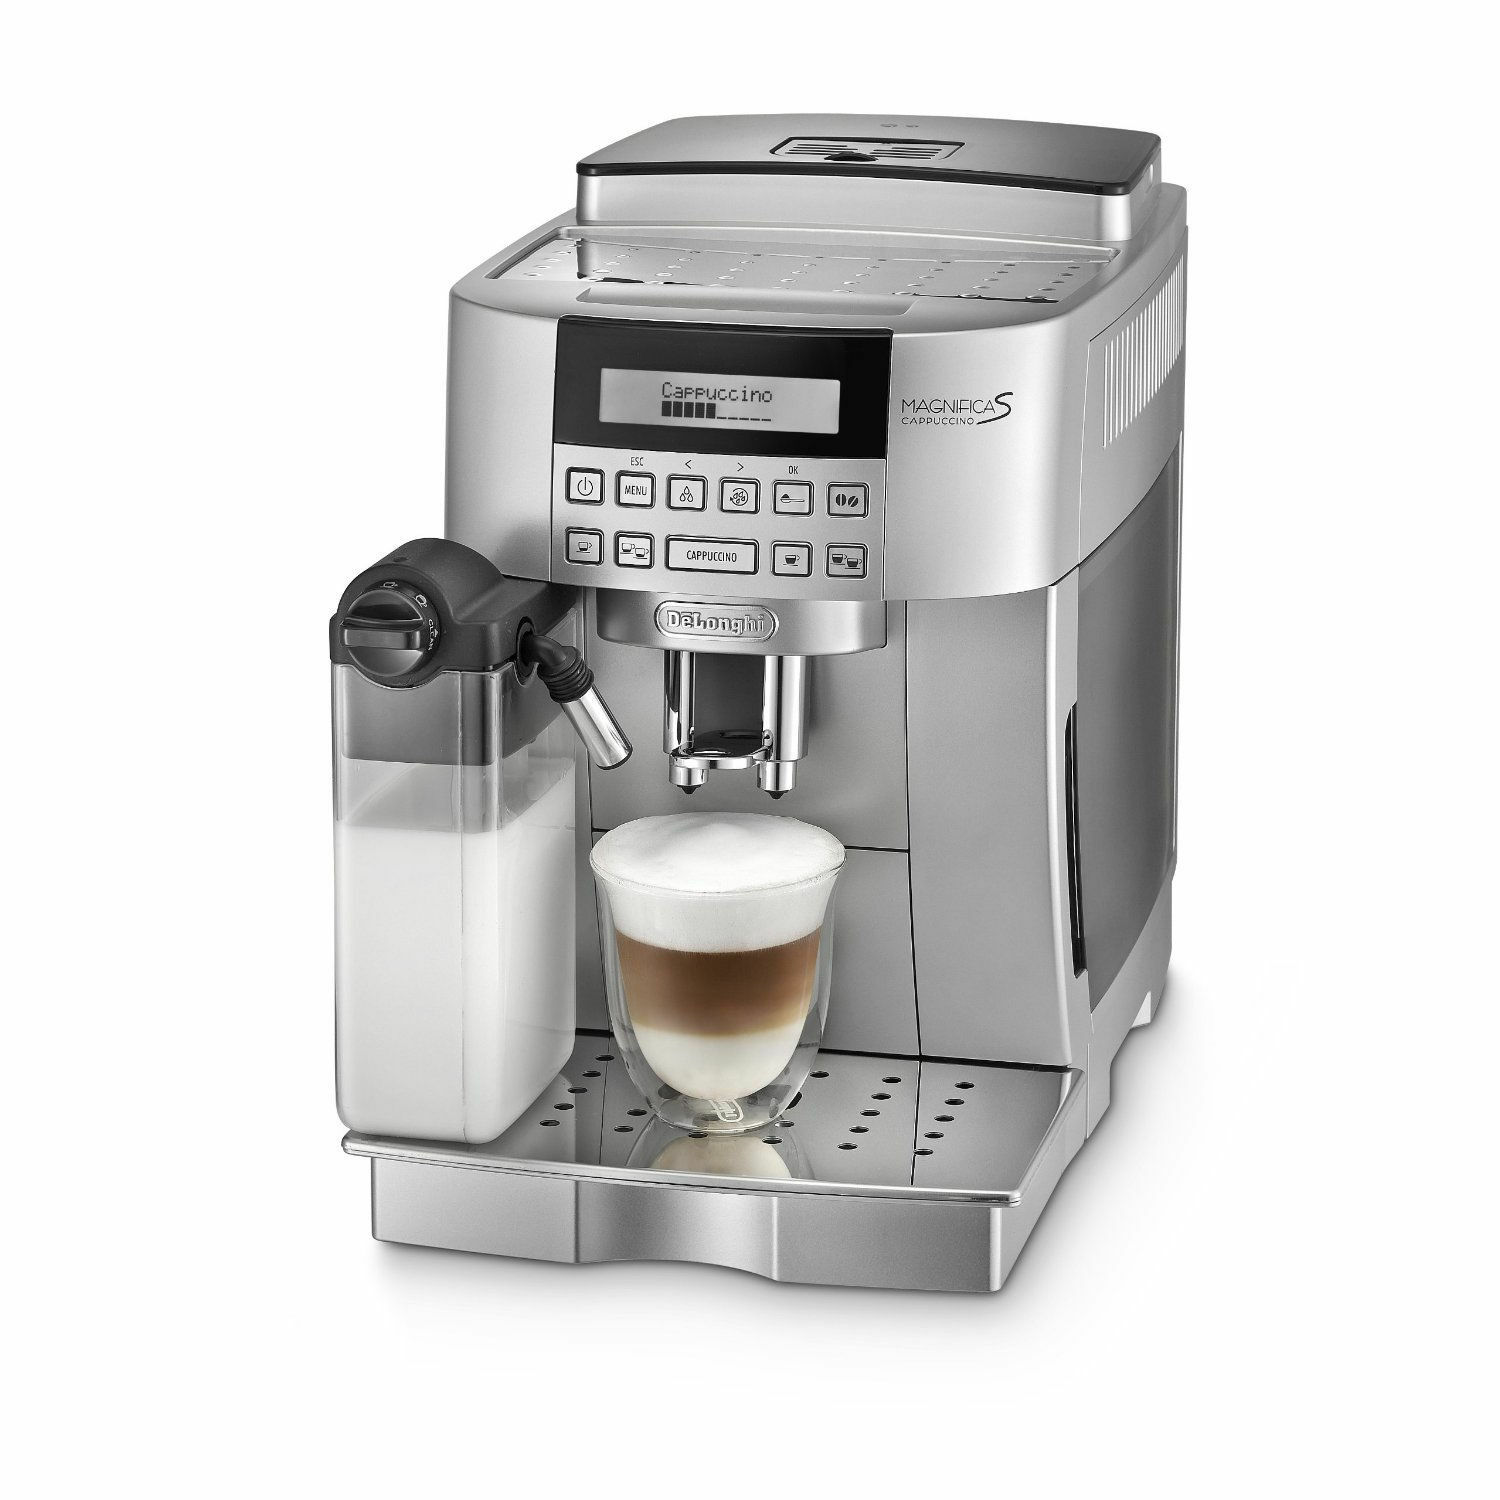 De Longhi ECAM22.360.S Fully Automatic Bean to Cup Coffee Machine, 220W NEW ?489.99 - PicClick UK